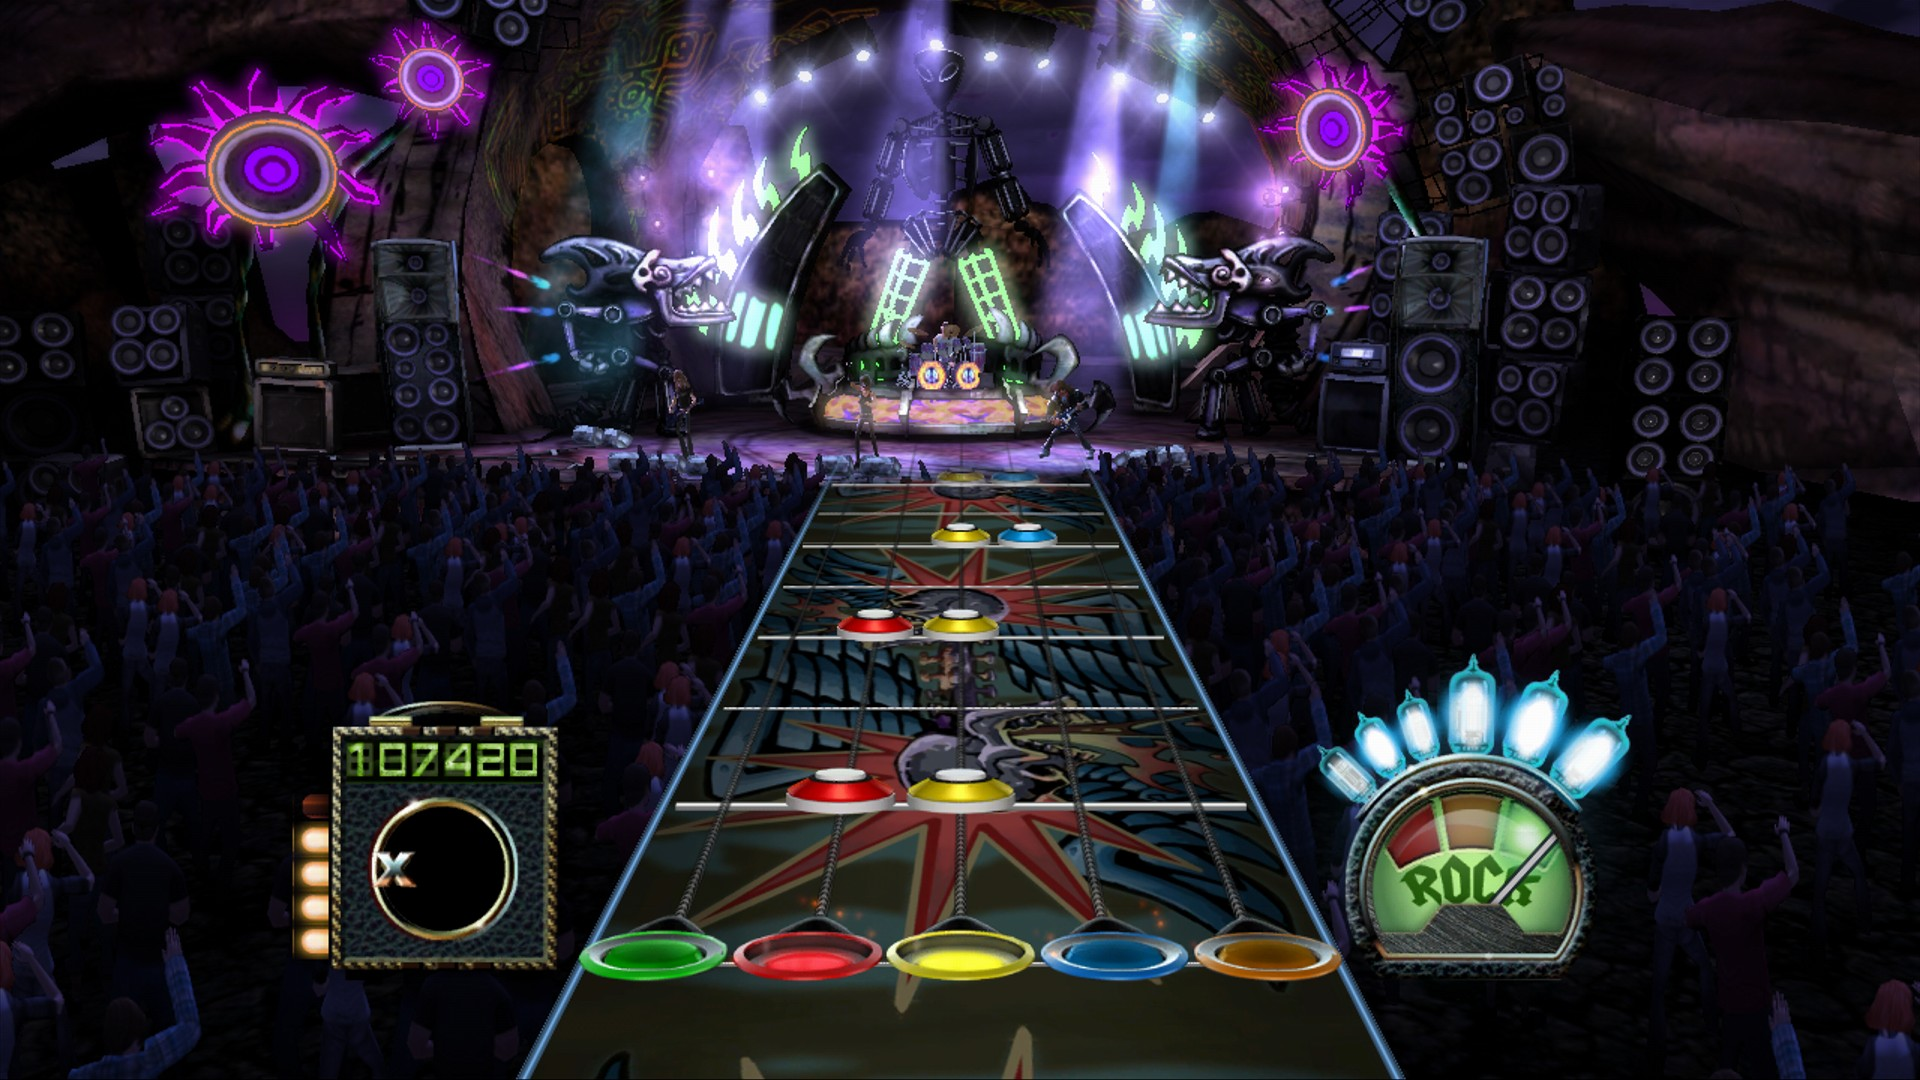 Guitar Hero HD wallpapers, Desktop wallpaper - most viewed